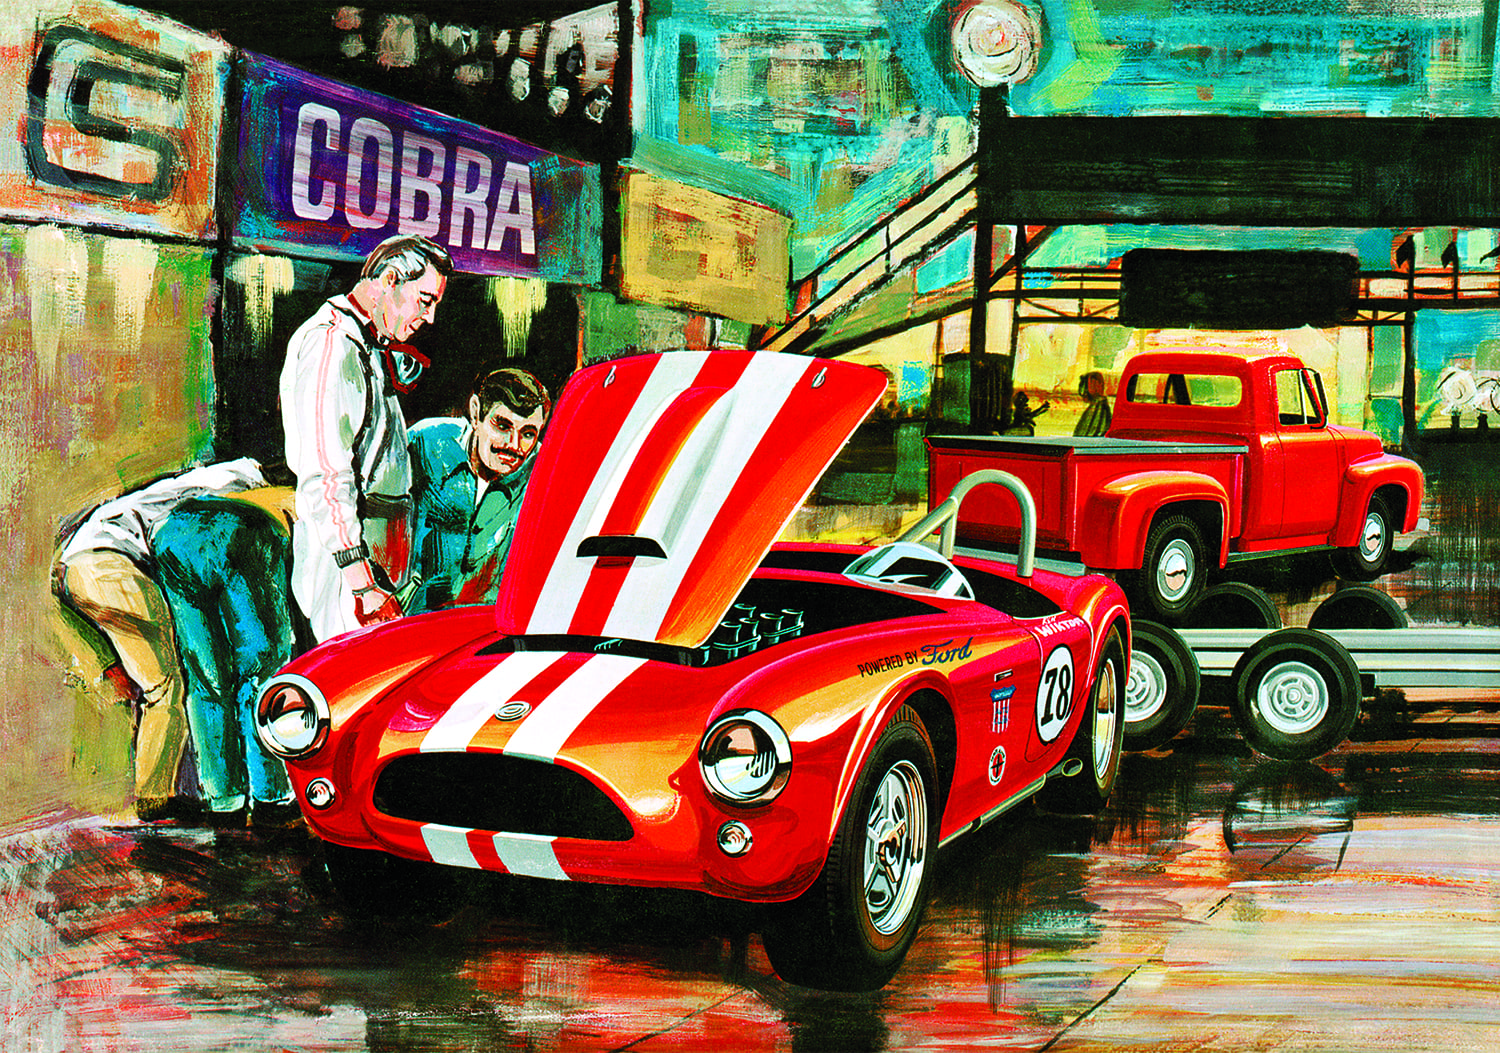 AMT Cobra Racing Team Shelby Cobra and 1953 Ford Pickup & Trailer